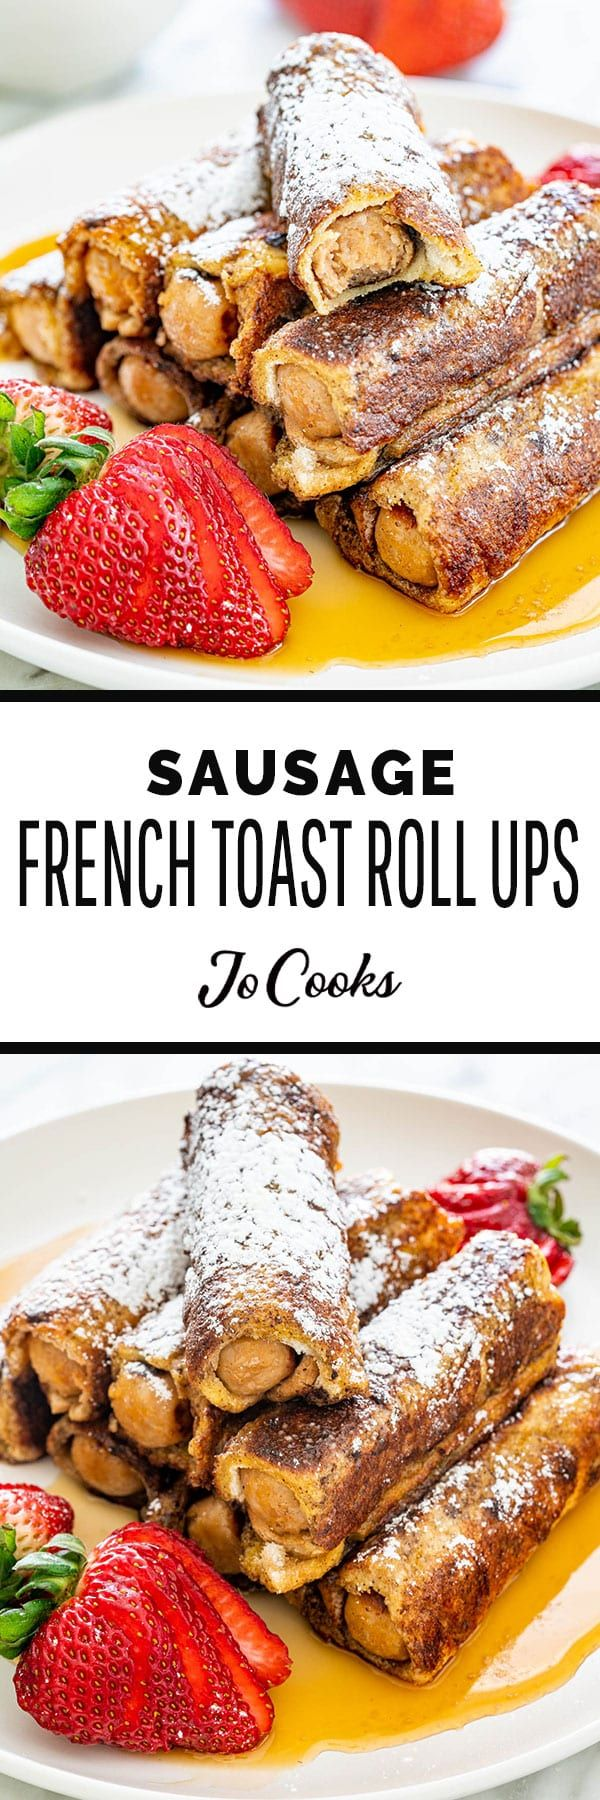 This easy sweet and savory Sausage French Toast Roll Ups recipe is as fun to make as it is to eat. With just a few basic ingredients, this is a breakf...